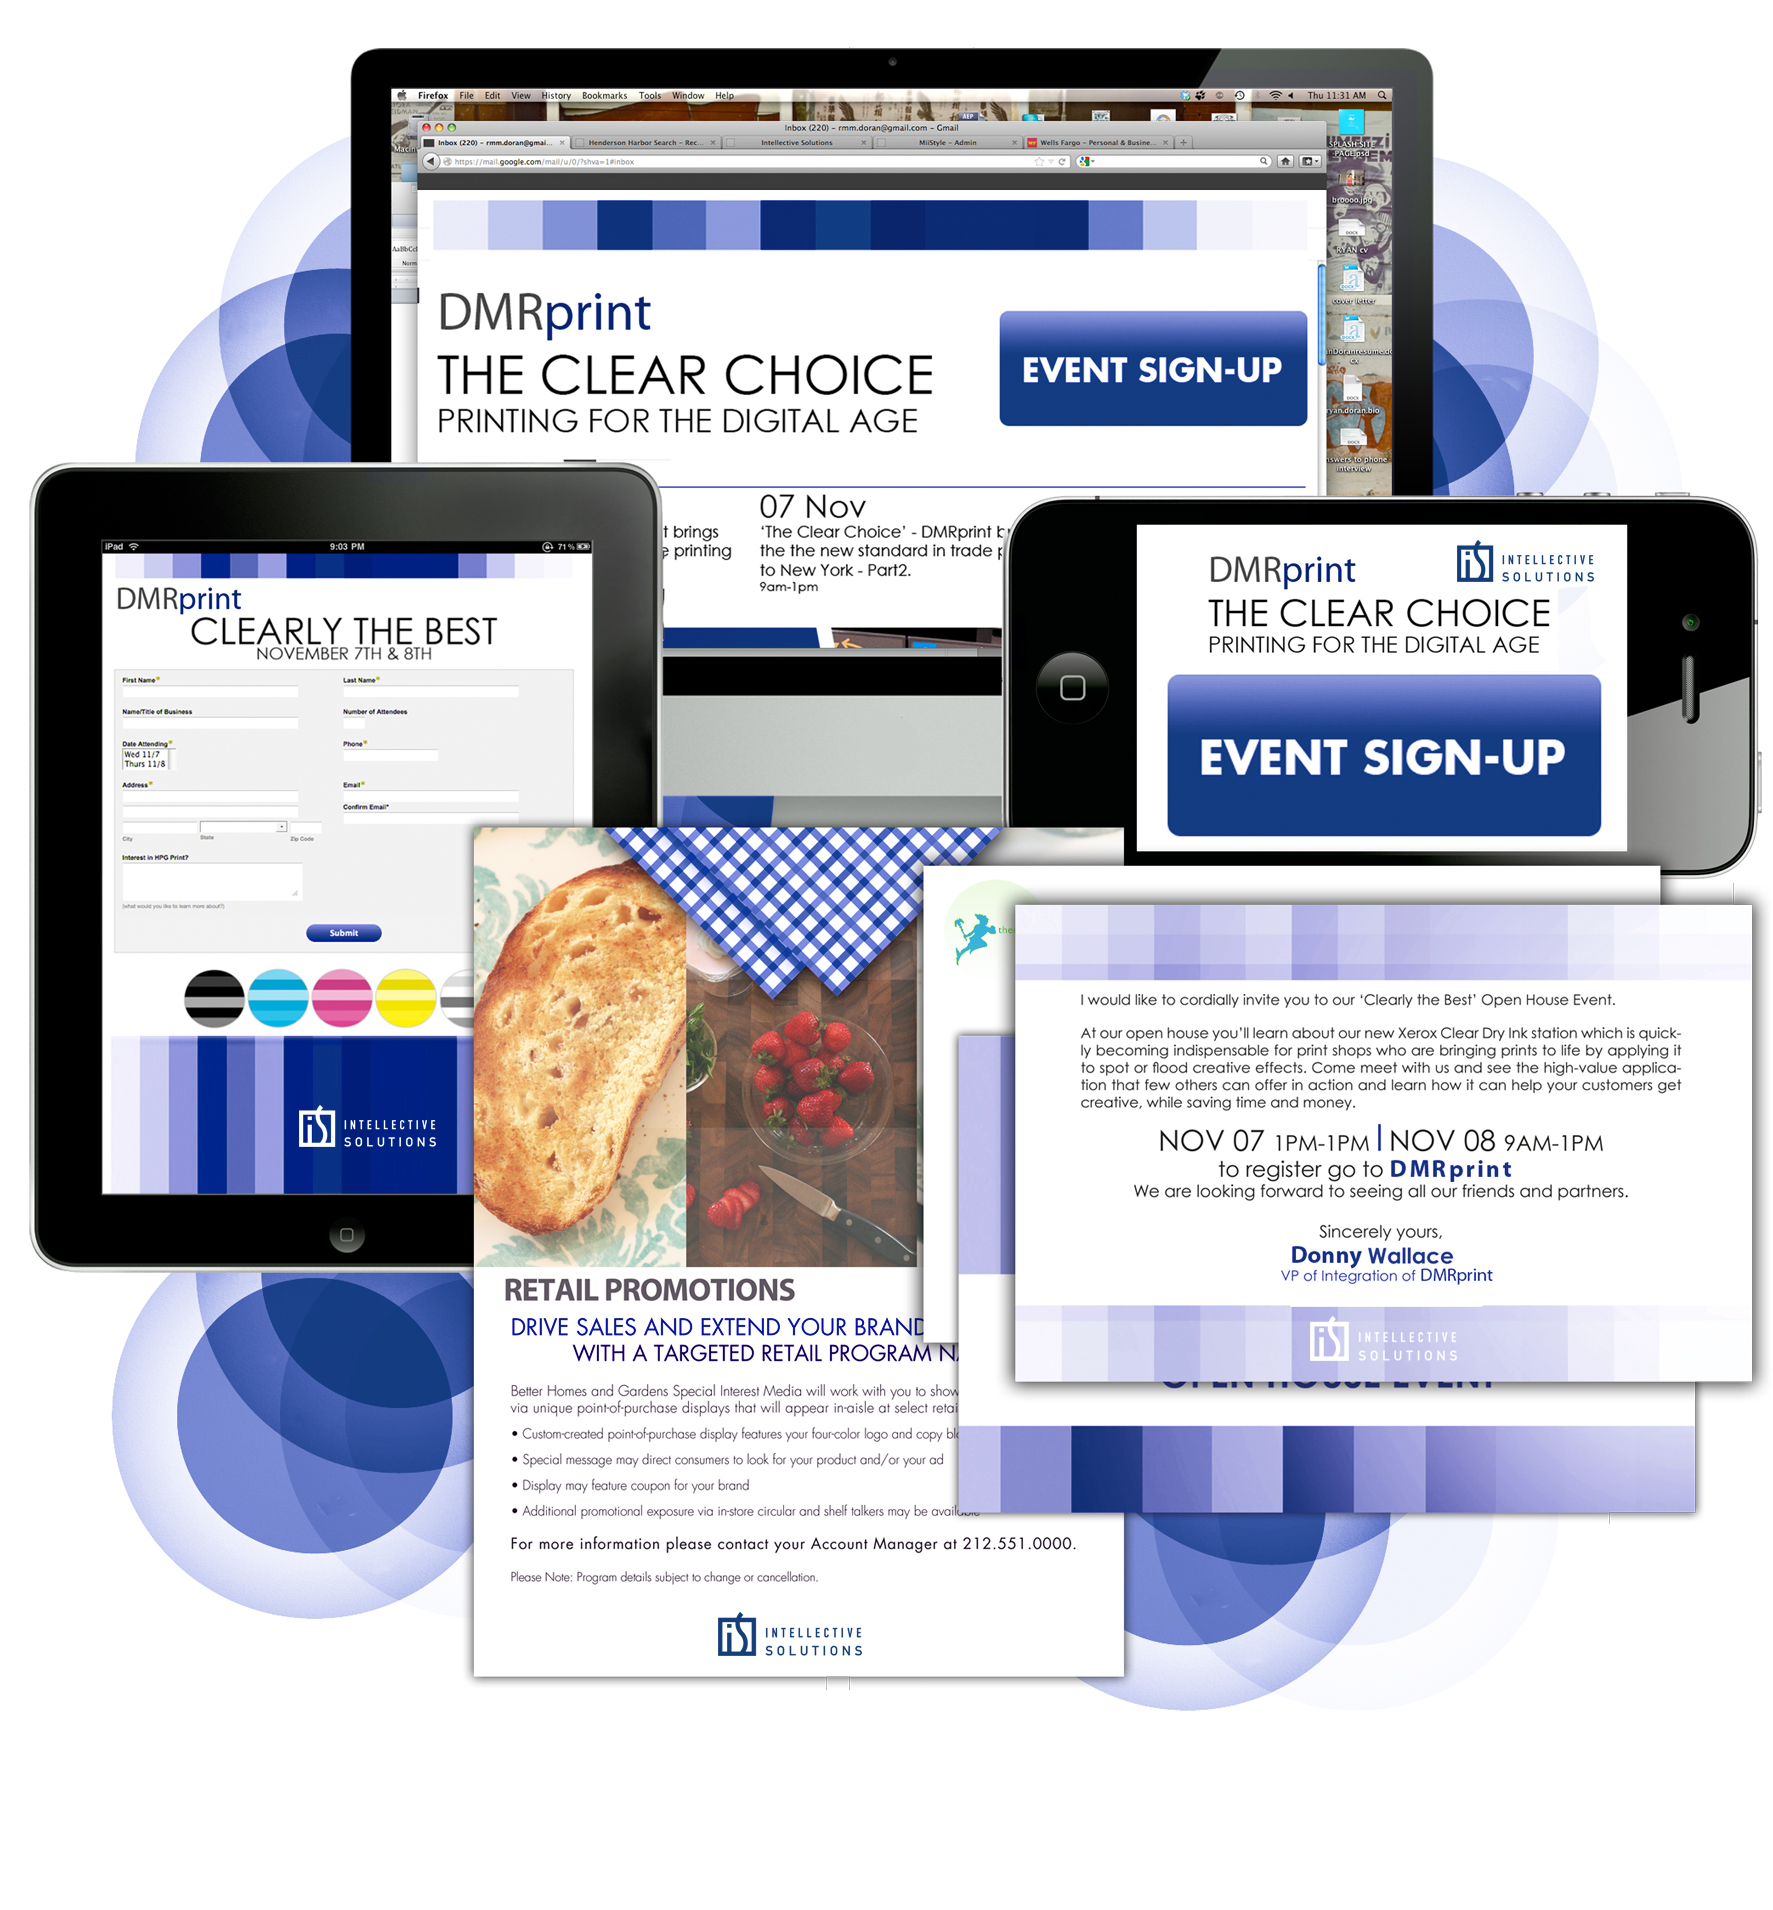 customer event open house solution, offering cross-platform, custom designed pieces including save the date emails and postcards, registration pages, and more.